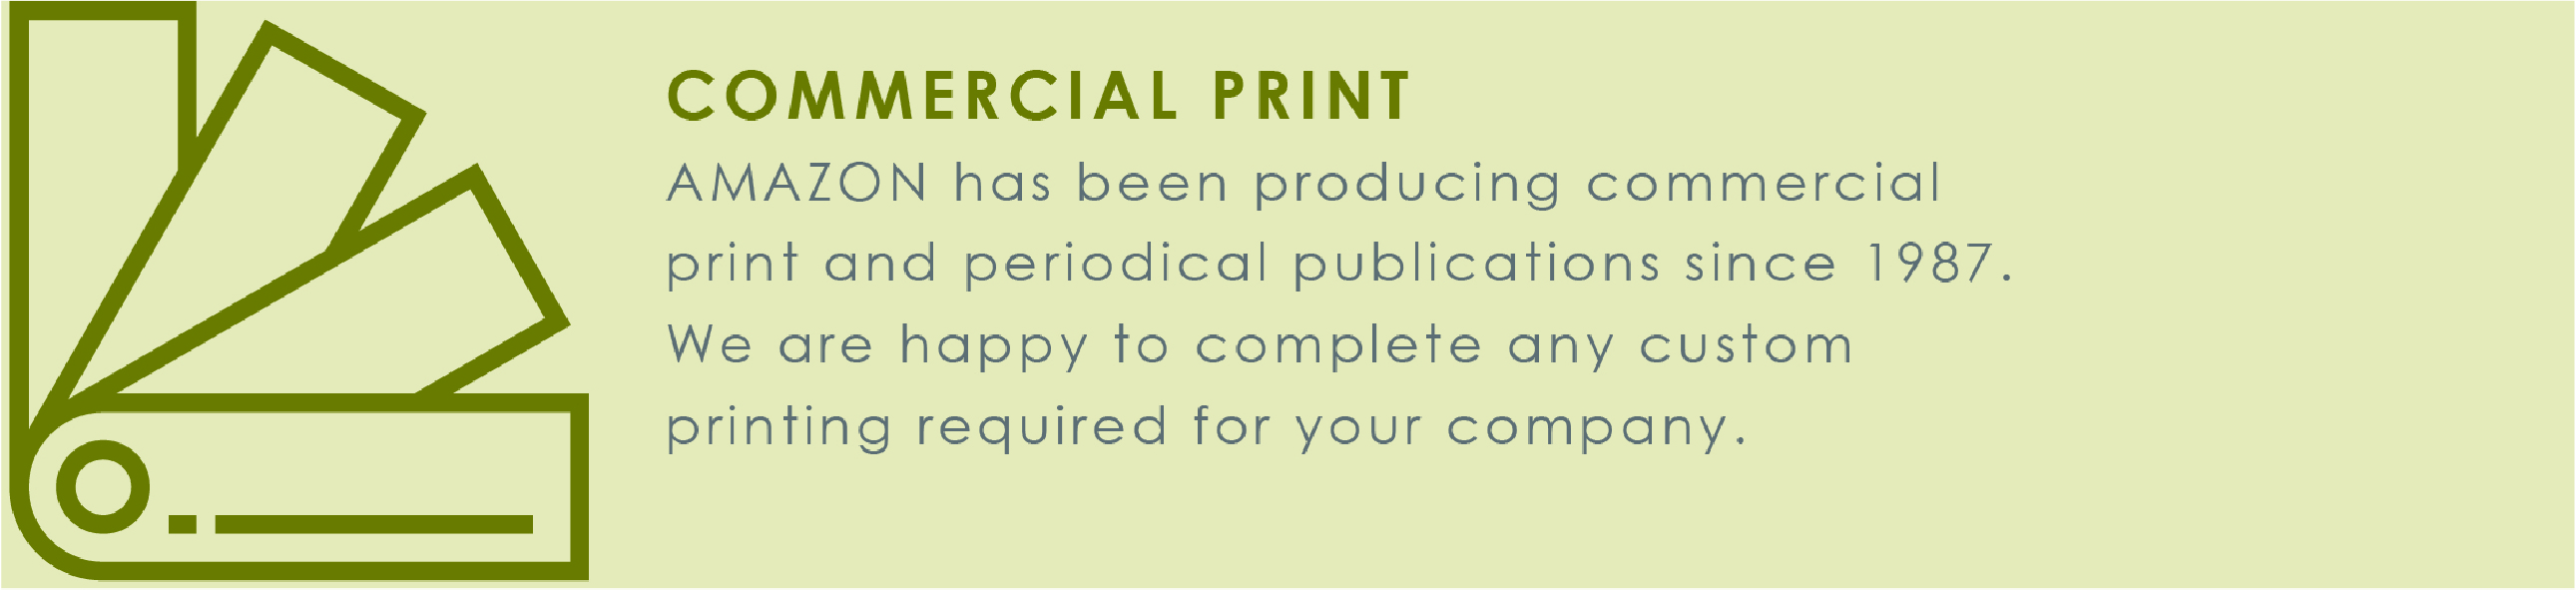 Commercial Print